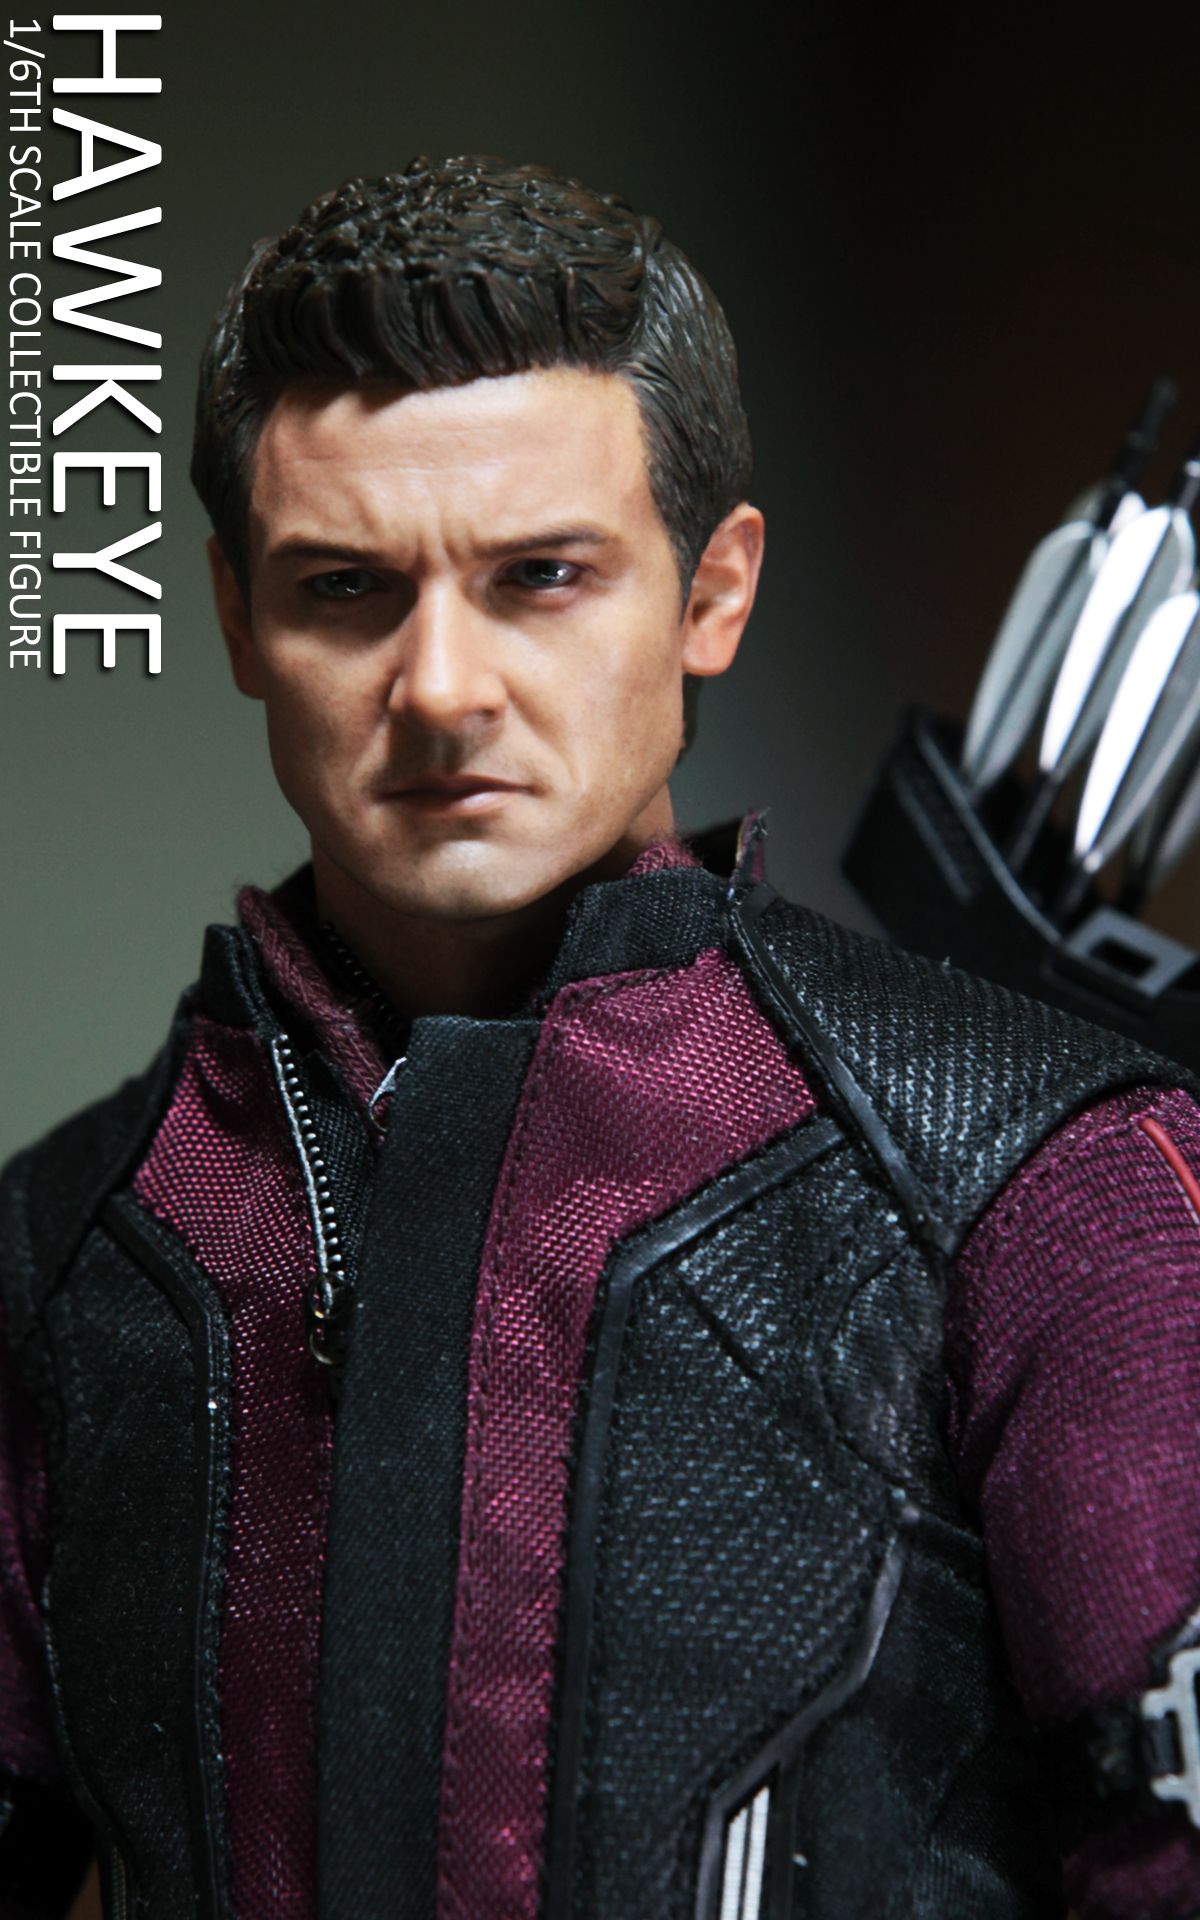 hottoys-avengers-age-of-ultron-hawkeye-picture10